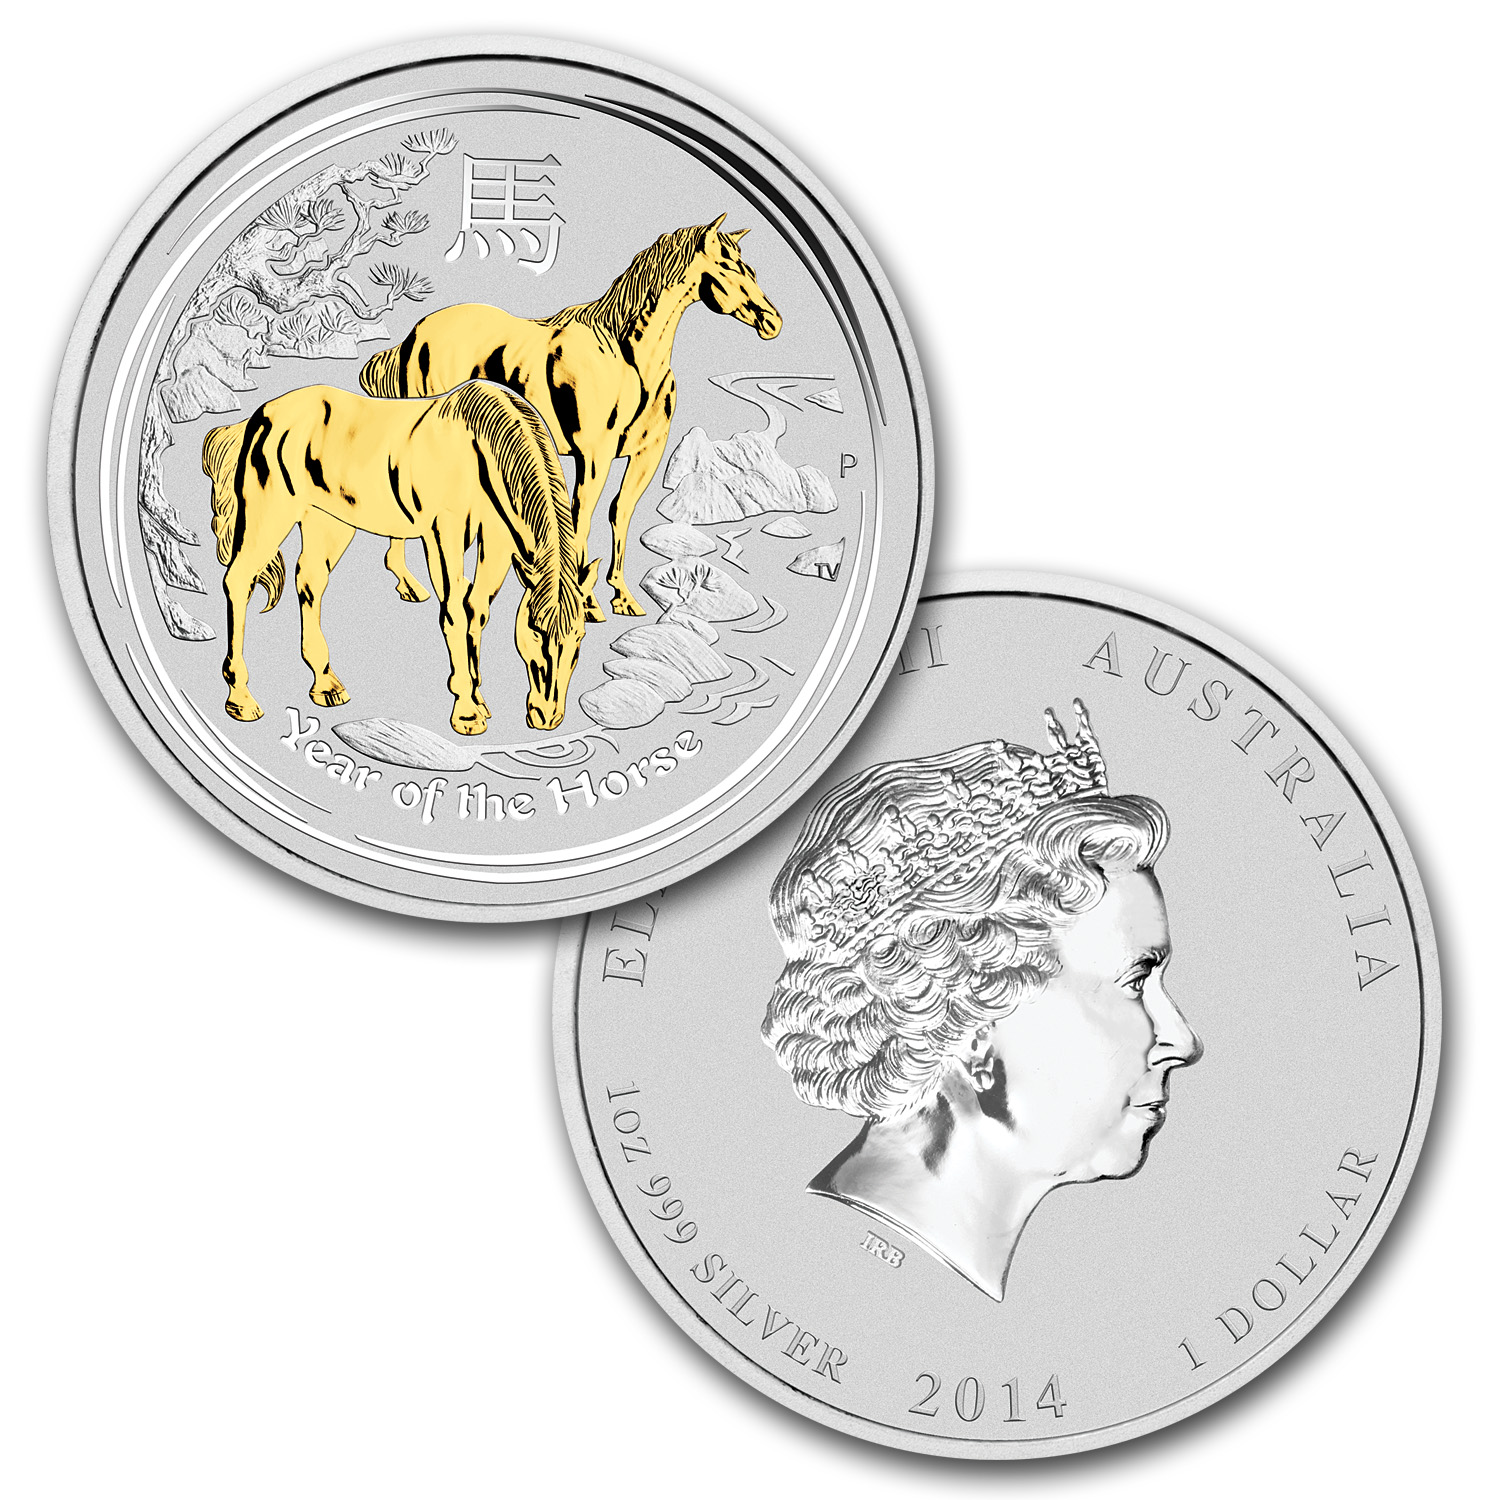 2014 Year of the Horse 1 oz Silver Typeset Collection (4 Coins)